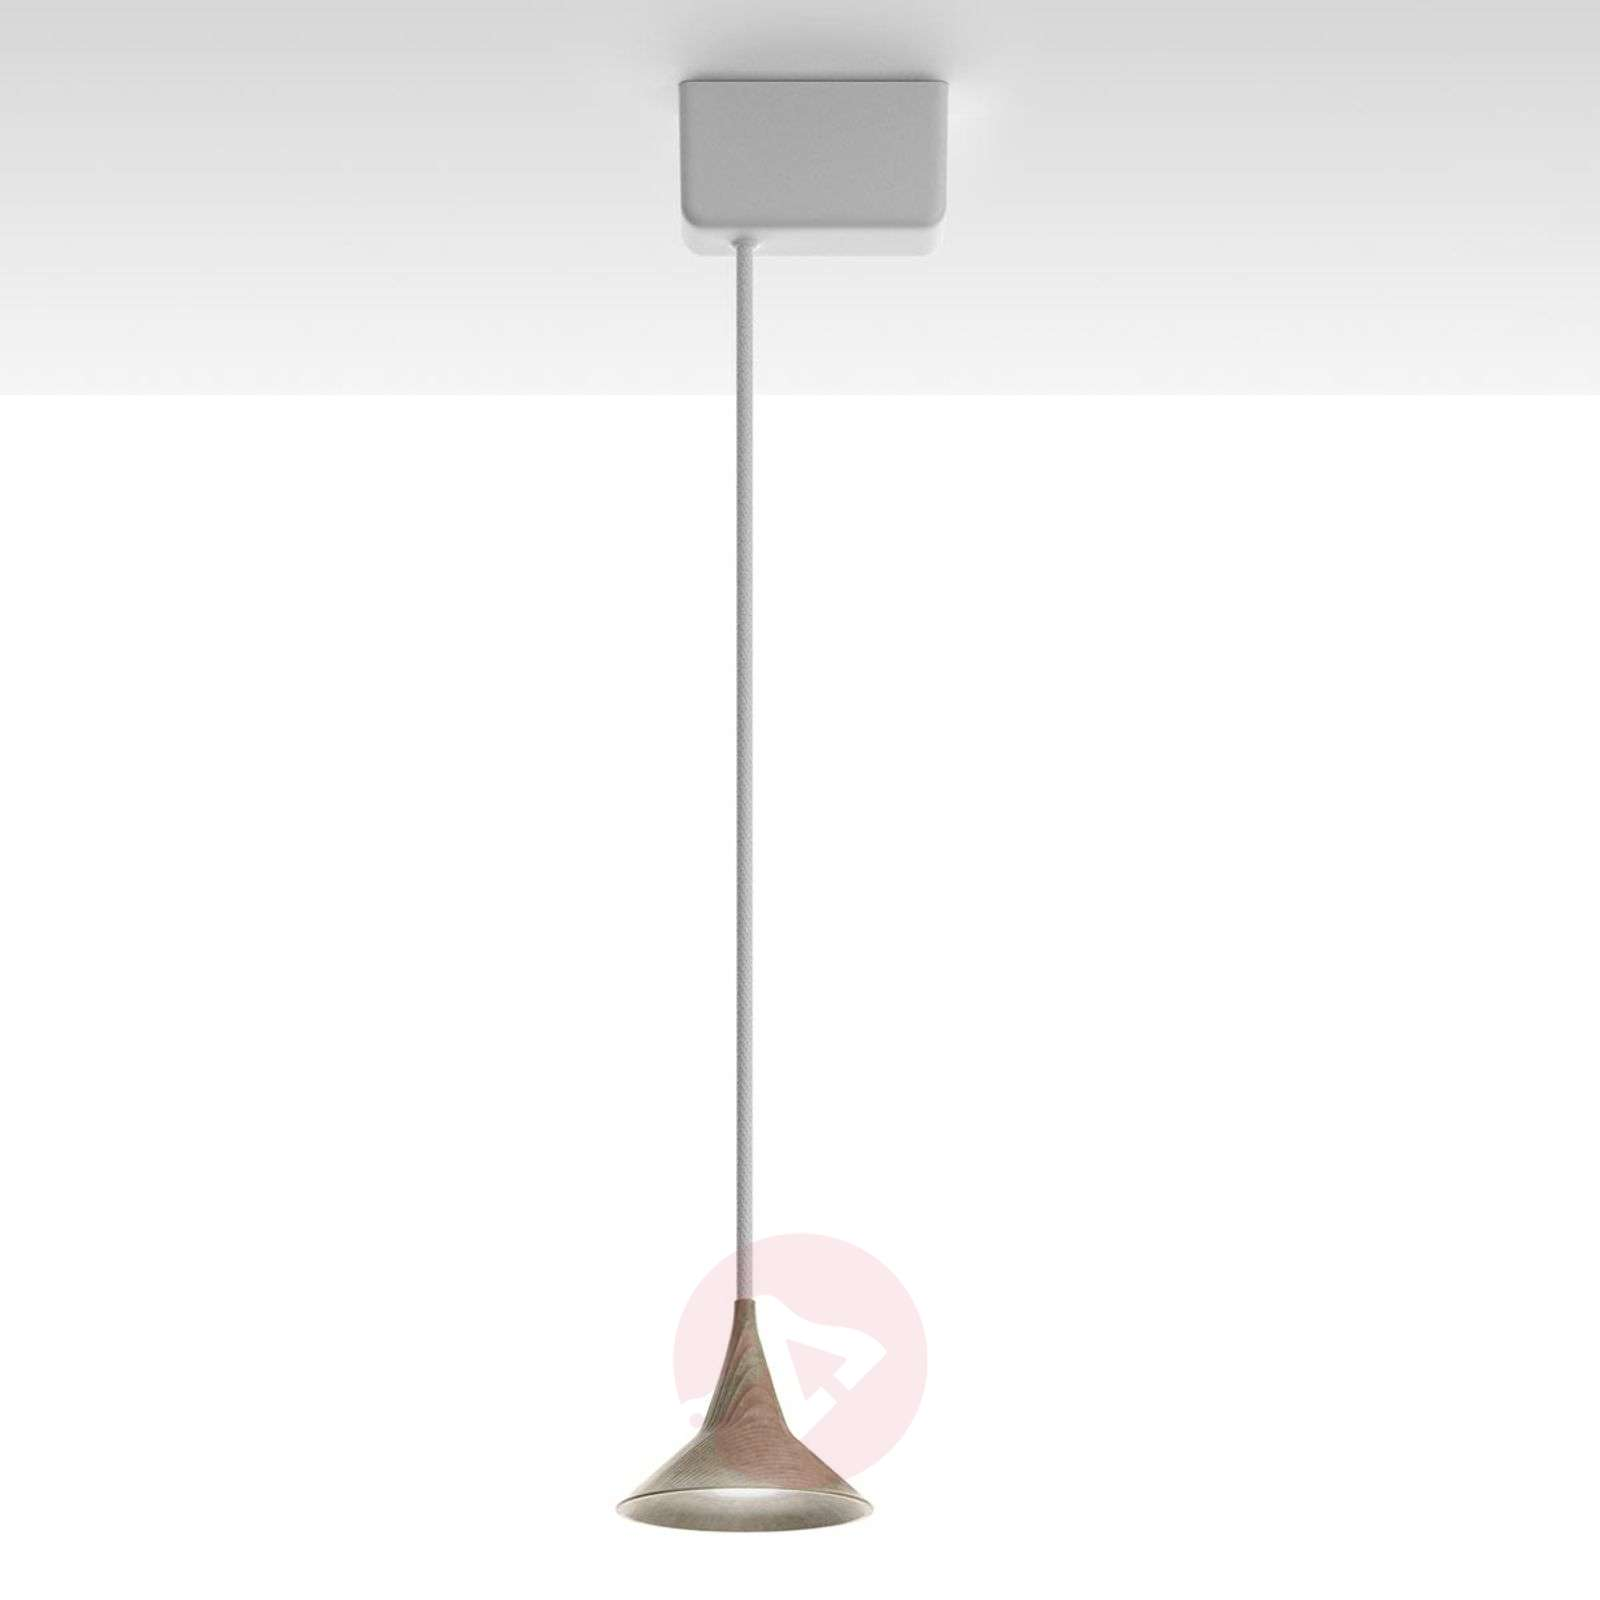 Artemide Unterlinden riippuvalaisin messinki 3000K-1060140-01